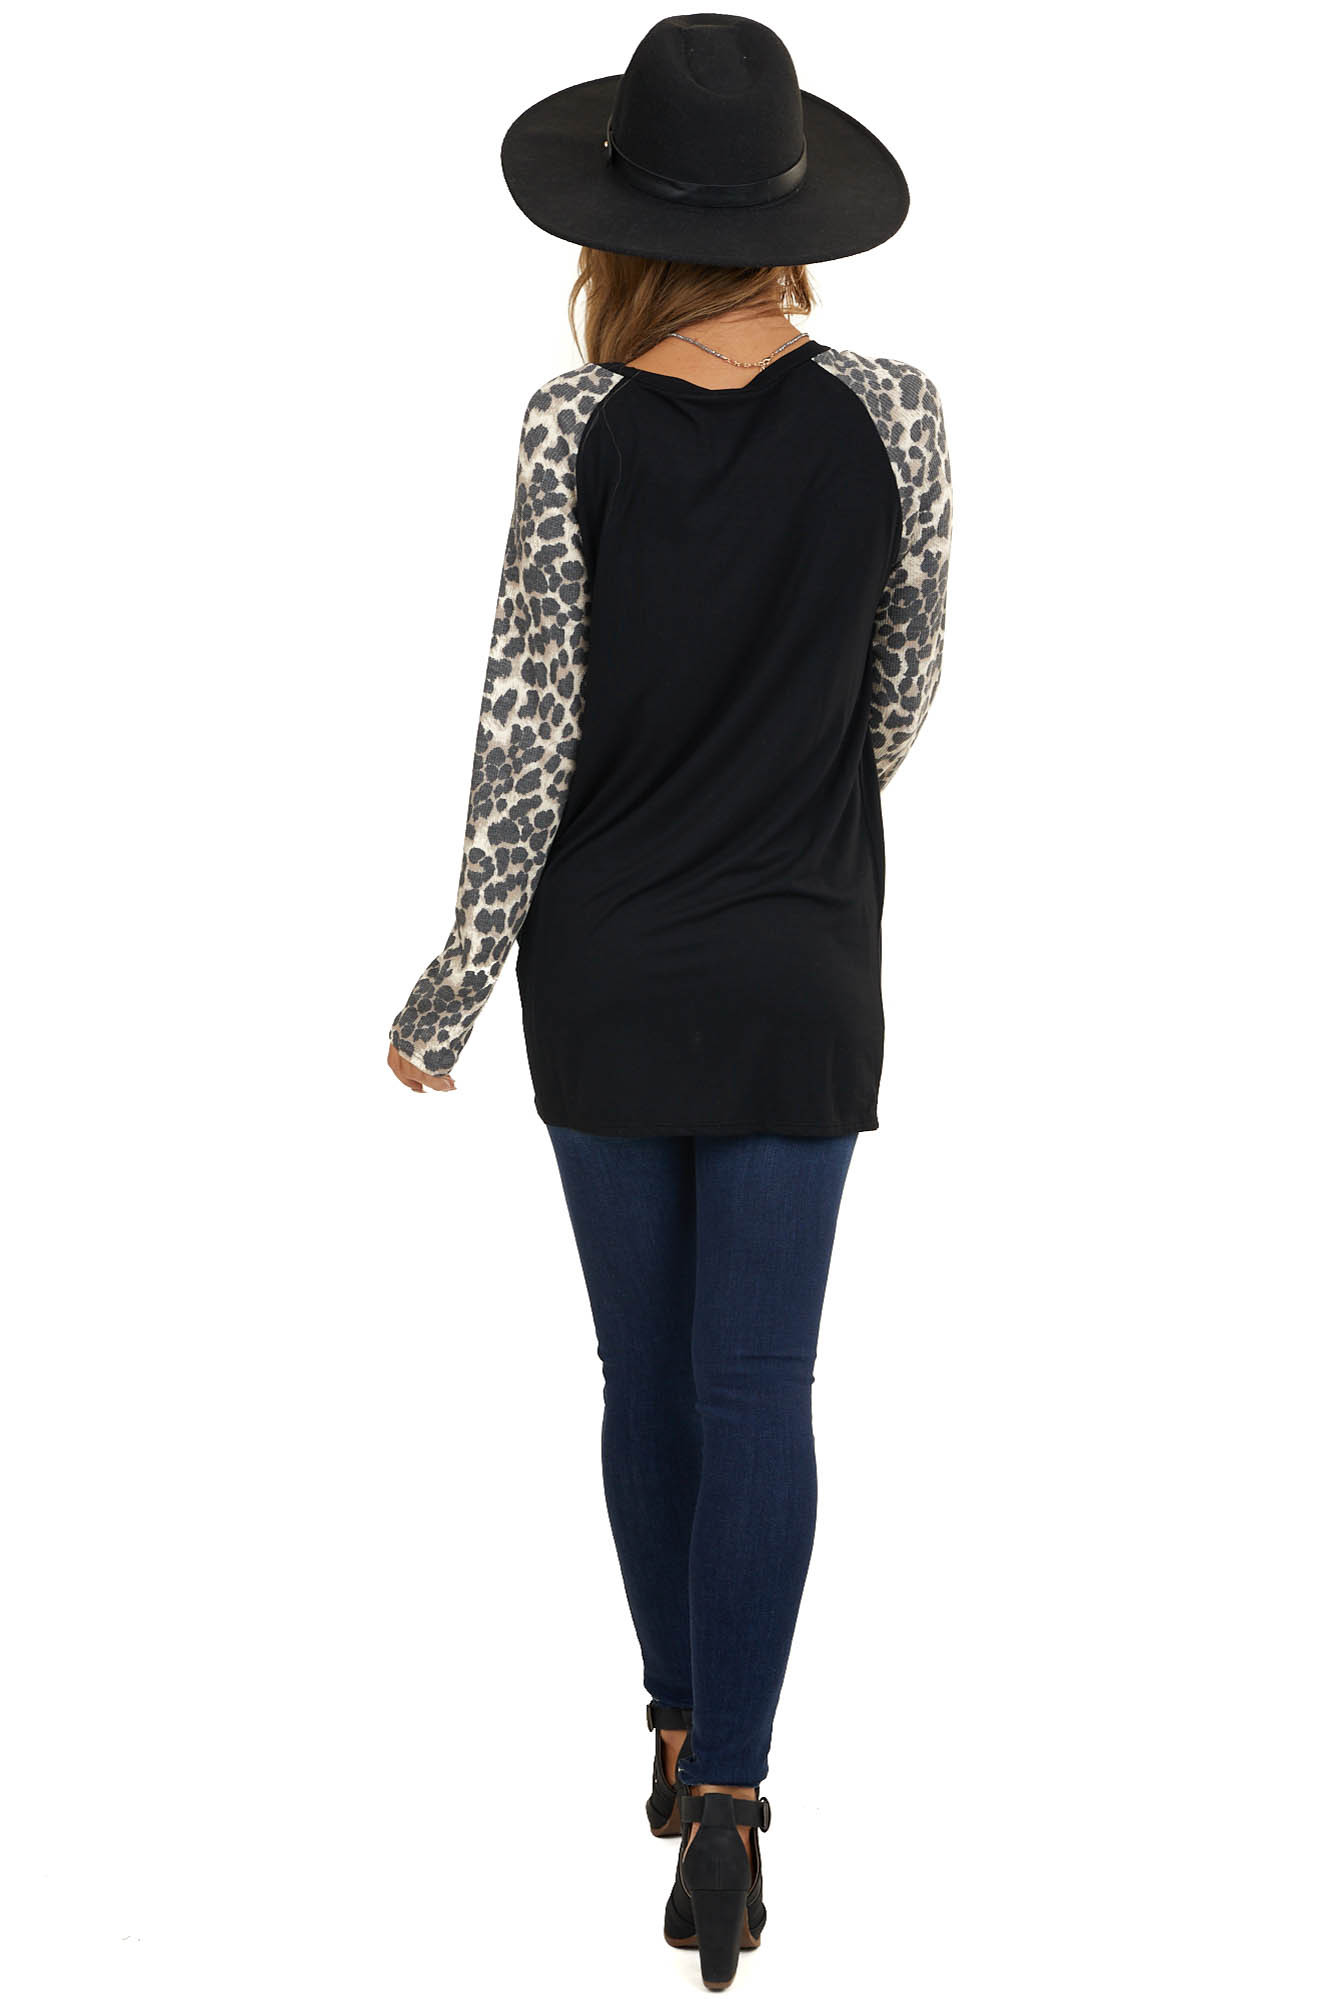 Black Soft Knit Top with Long Leopard Print Sleeves and Knot